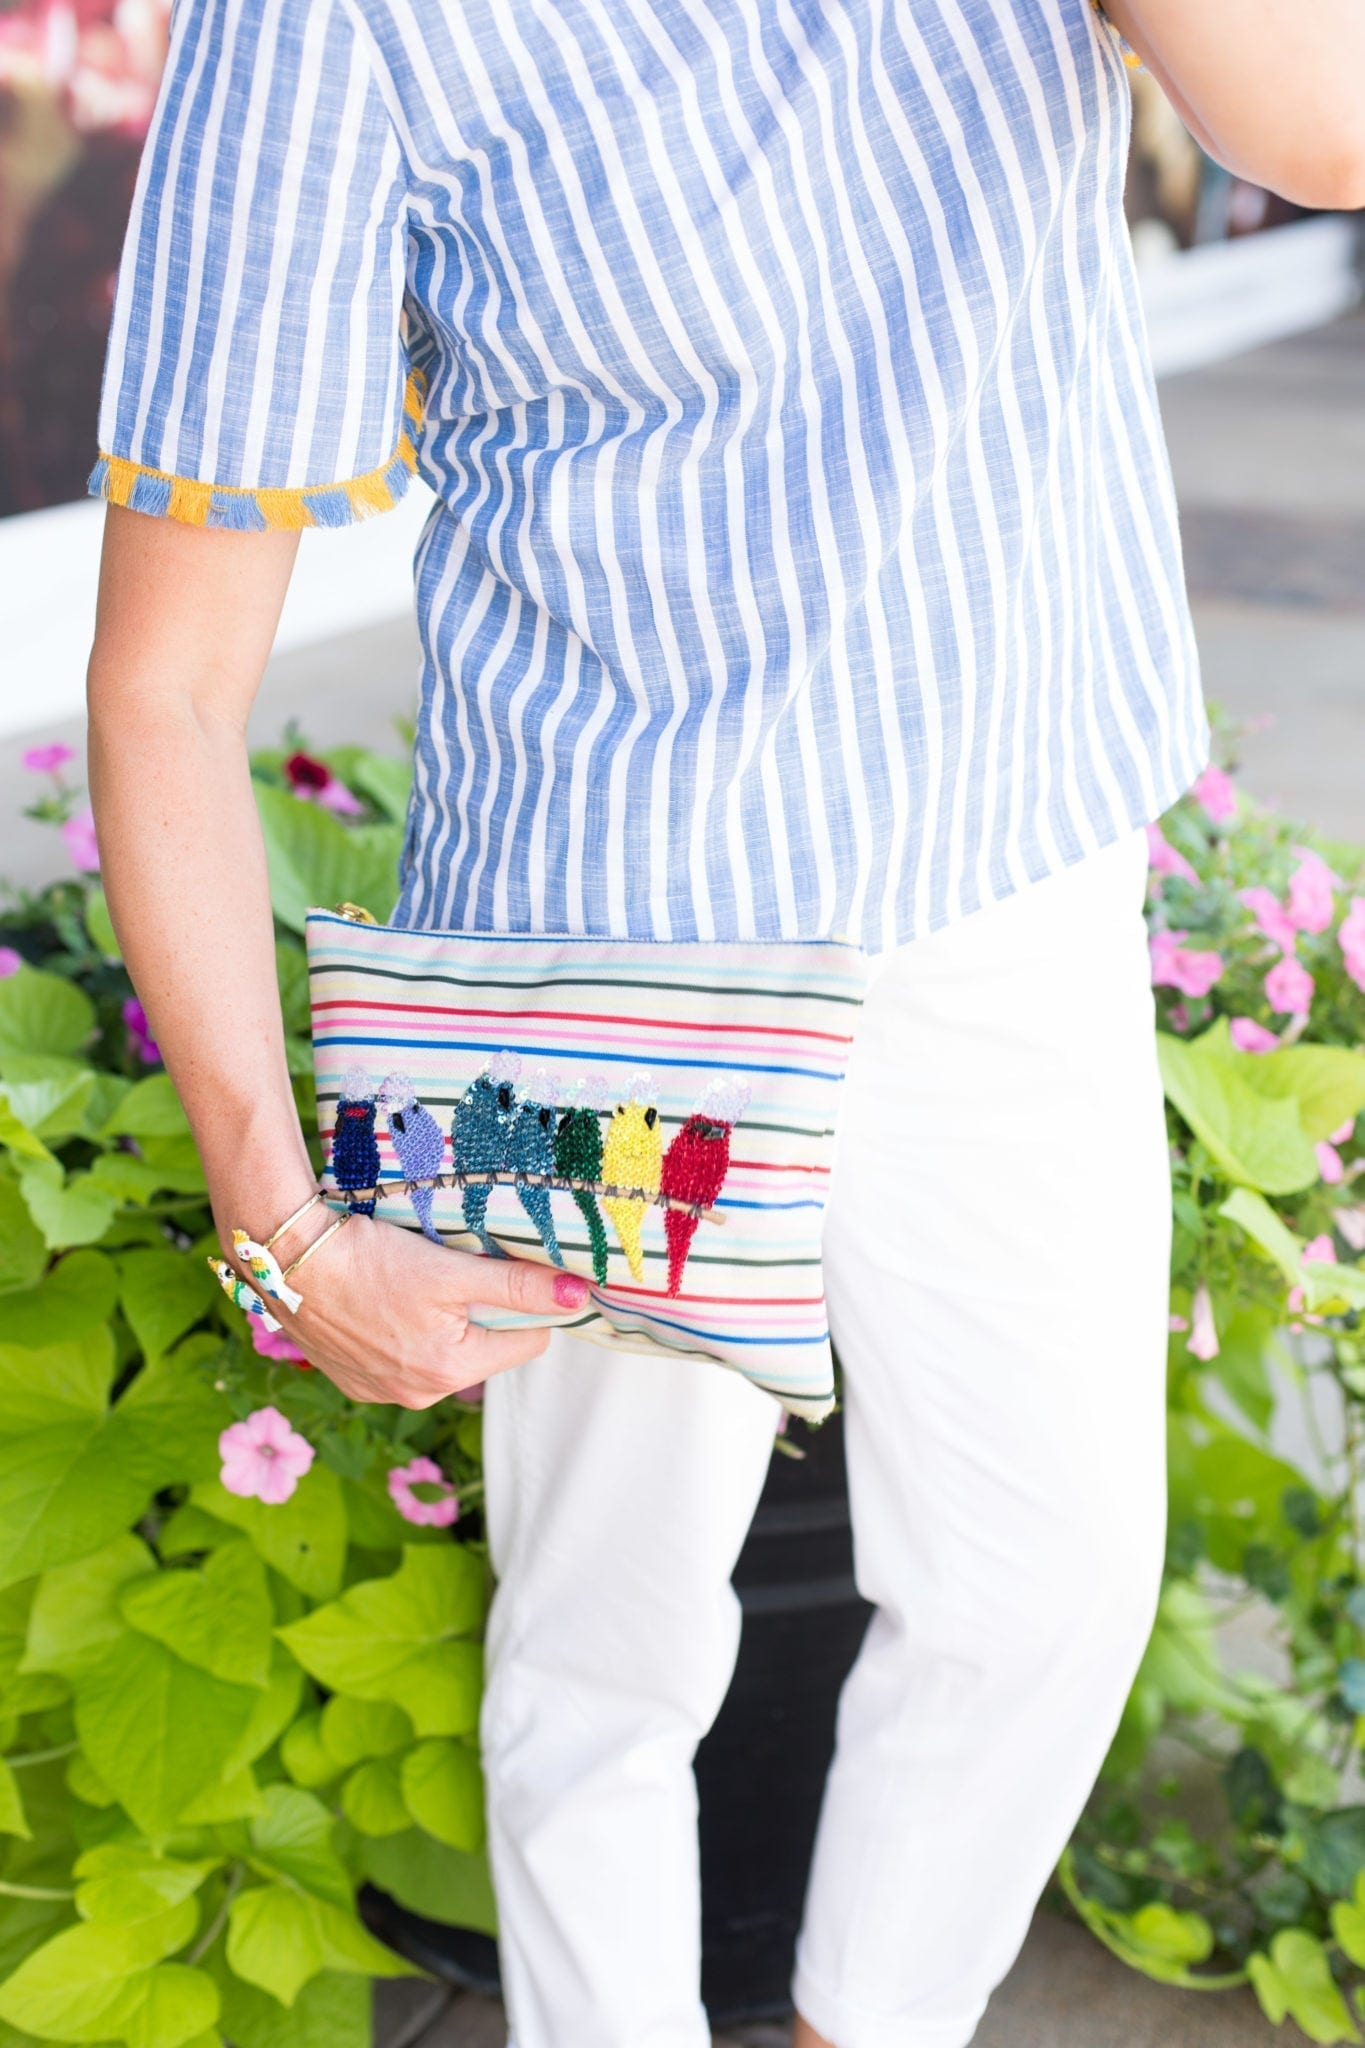 Talbots Parrot Clutch. Great clutch for Jimmy Buffet fans! A Parrothead must have!